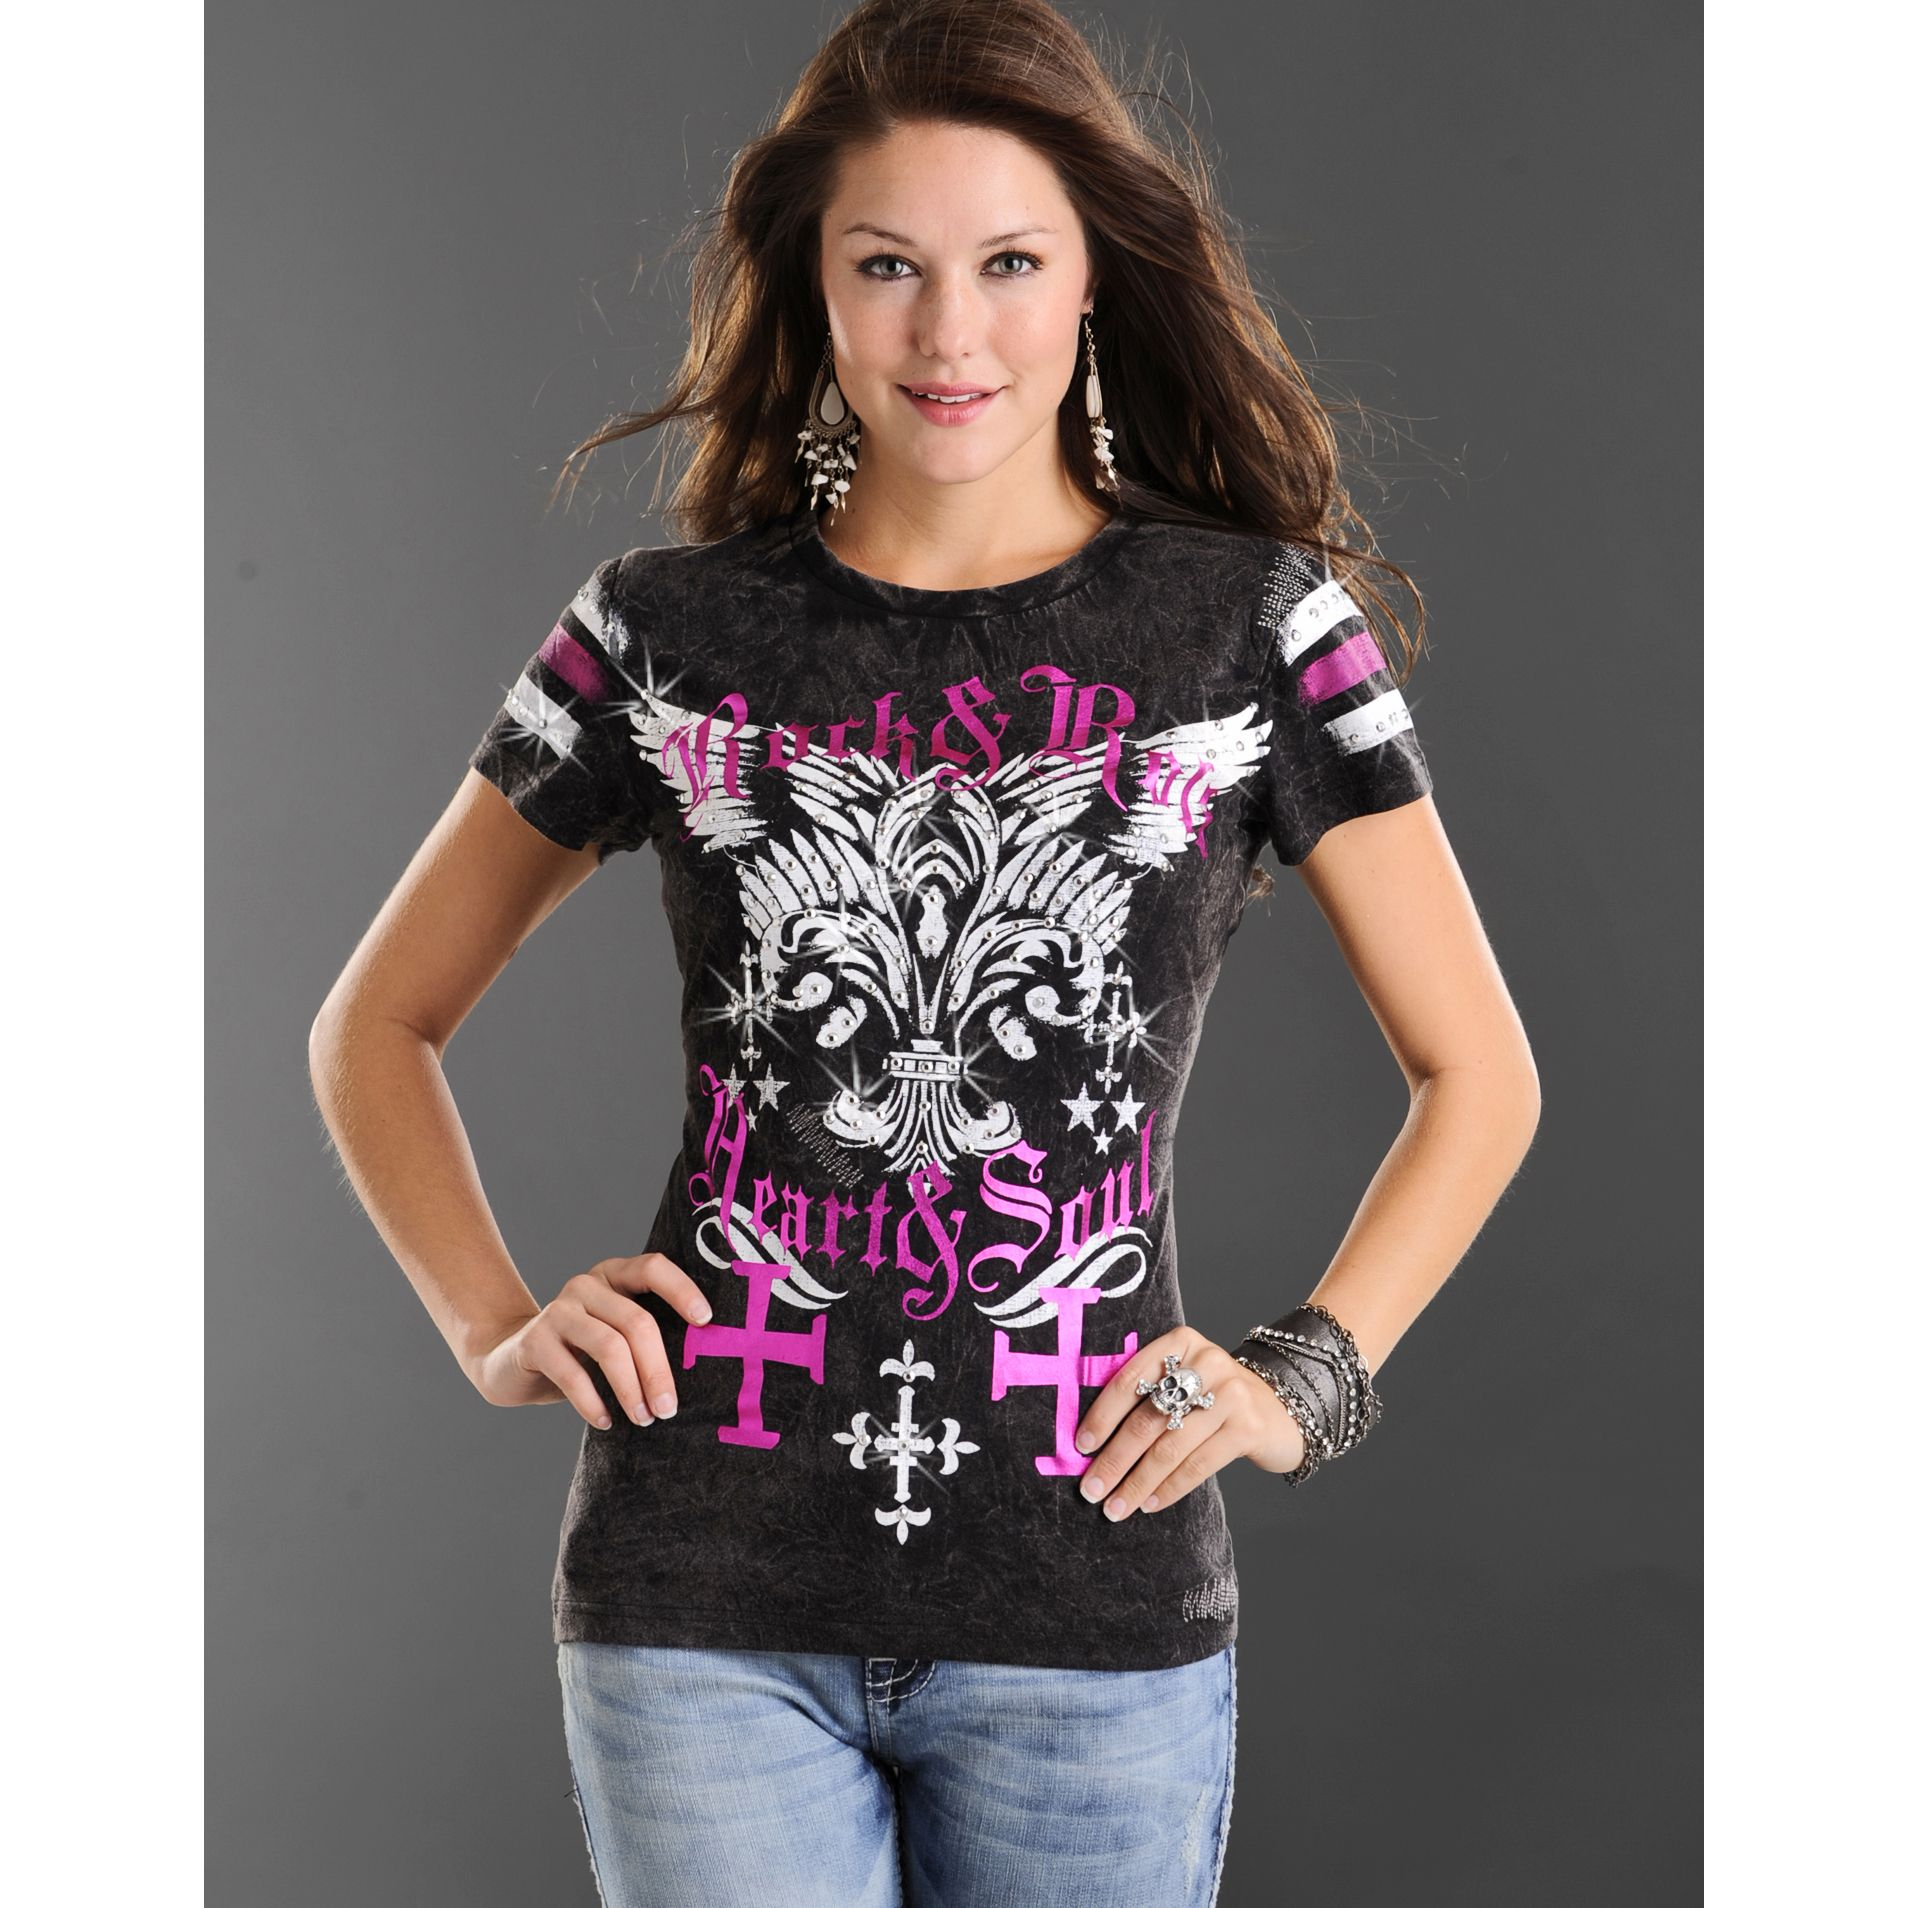 Rock and roll cowgirl fleur de lis and crosses tshirt clothes